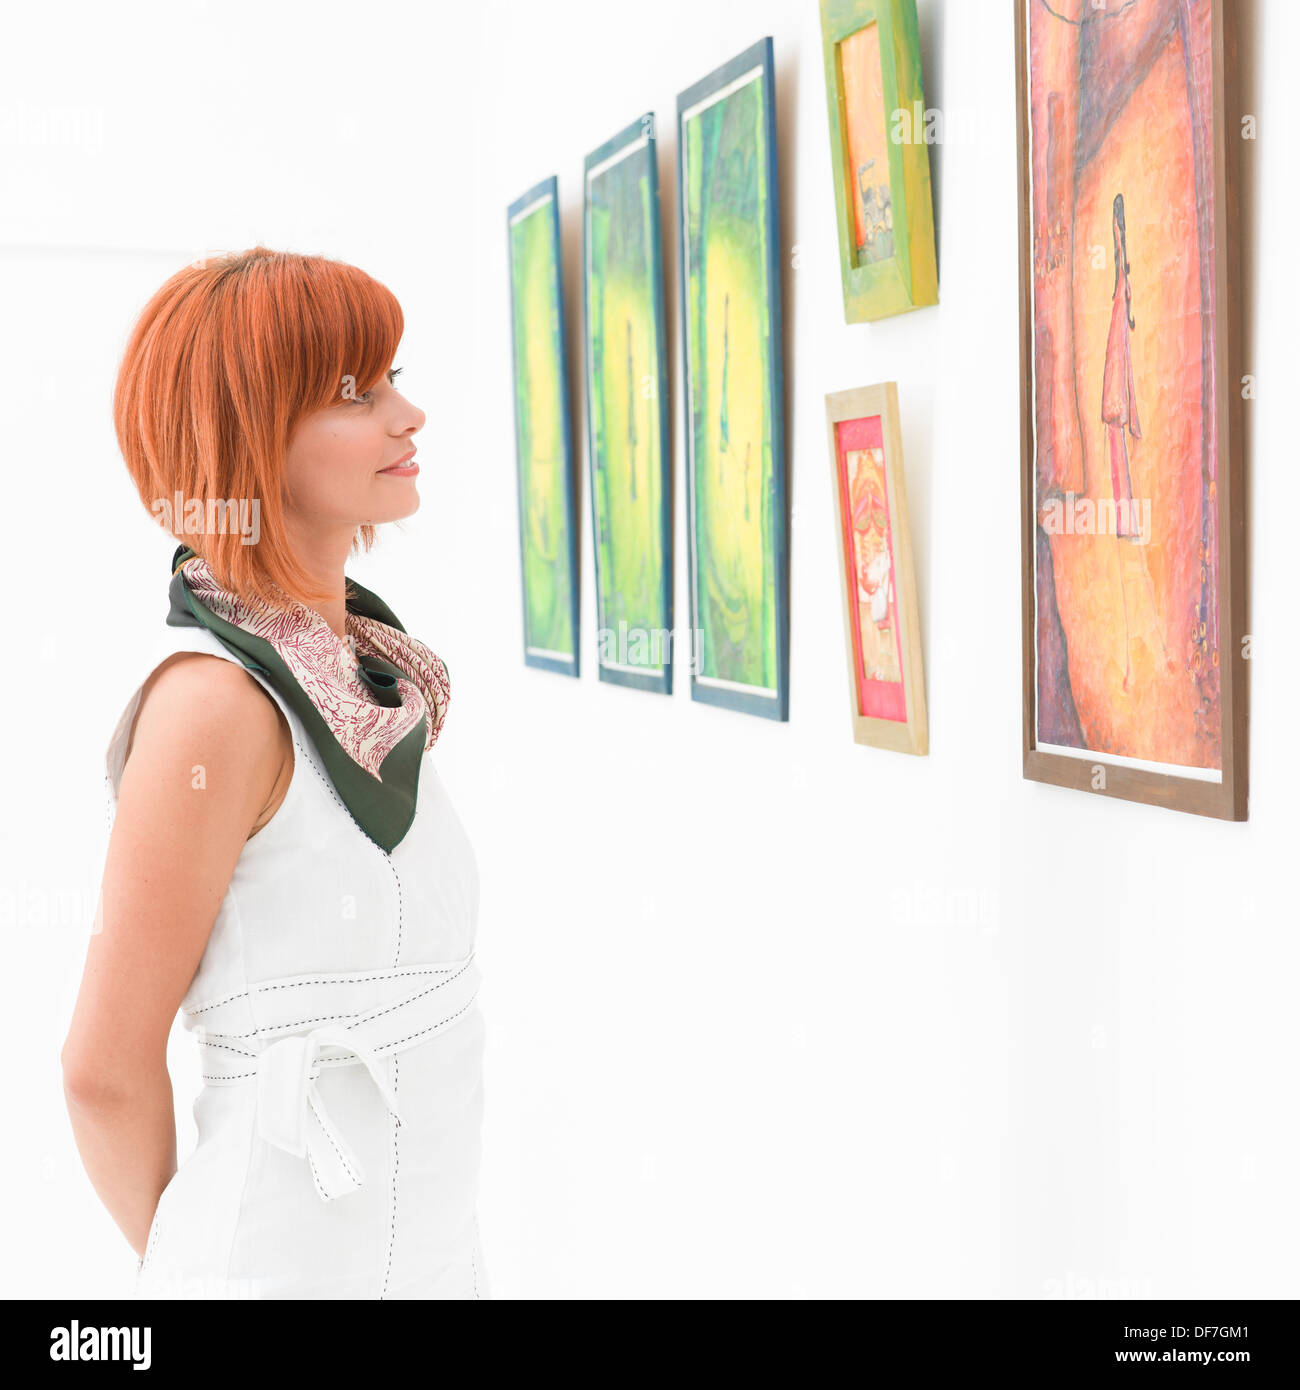 side view of young attractive redhead woman standing in an art gallery contemplating an artwork - Stock Image